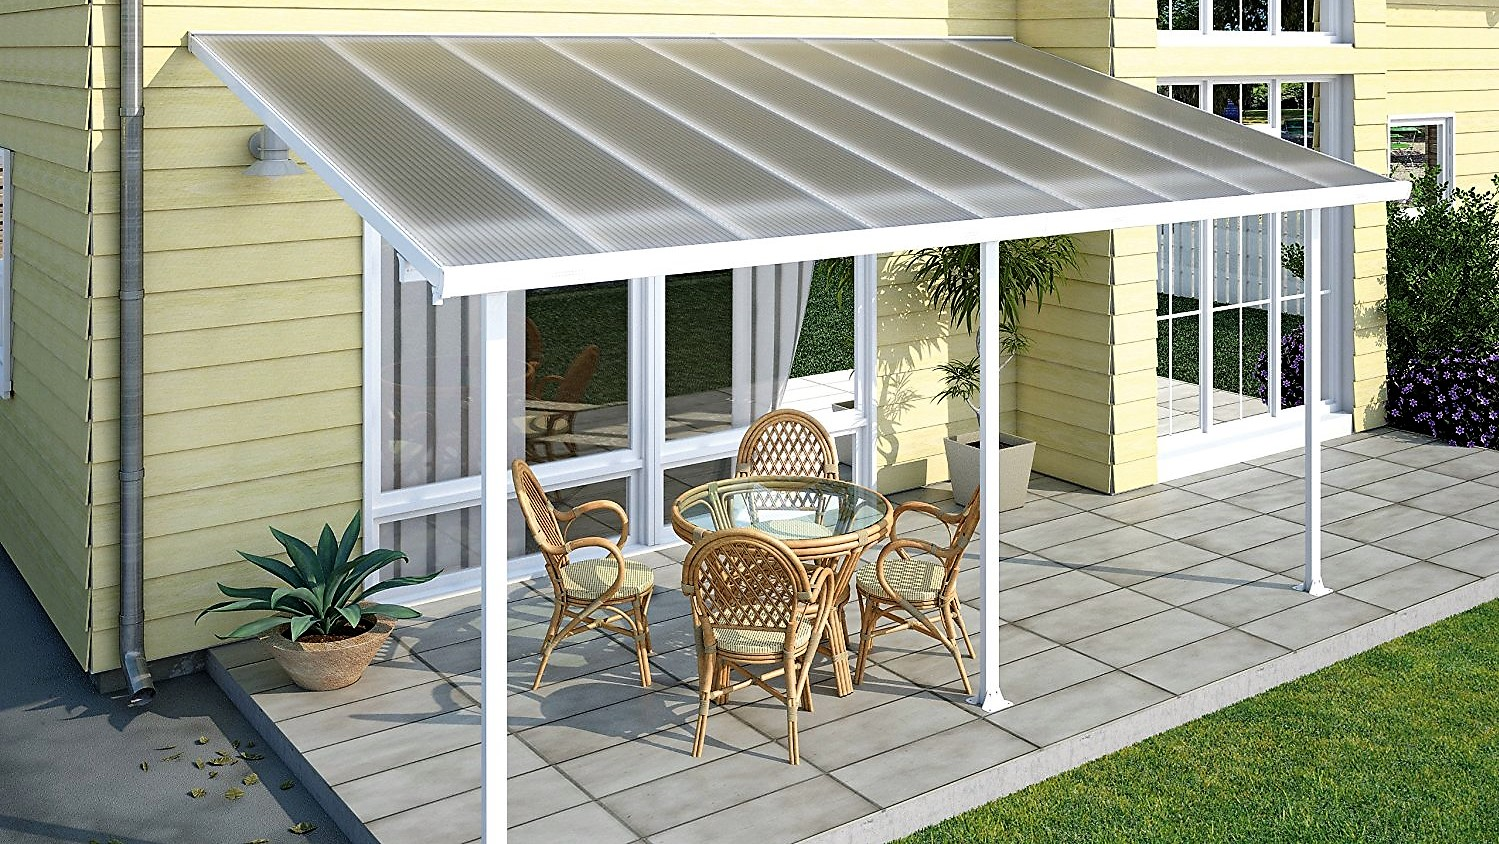 a_Twinwall_Polycarbonate_Roofing_Patio_Sunnyside-narrow